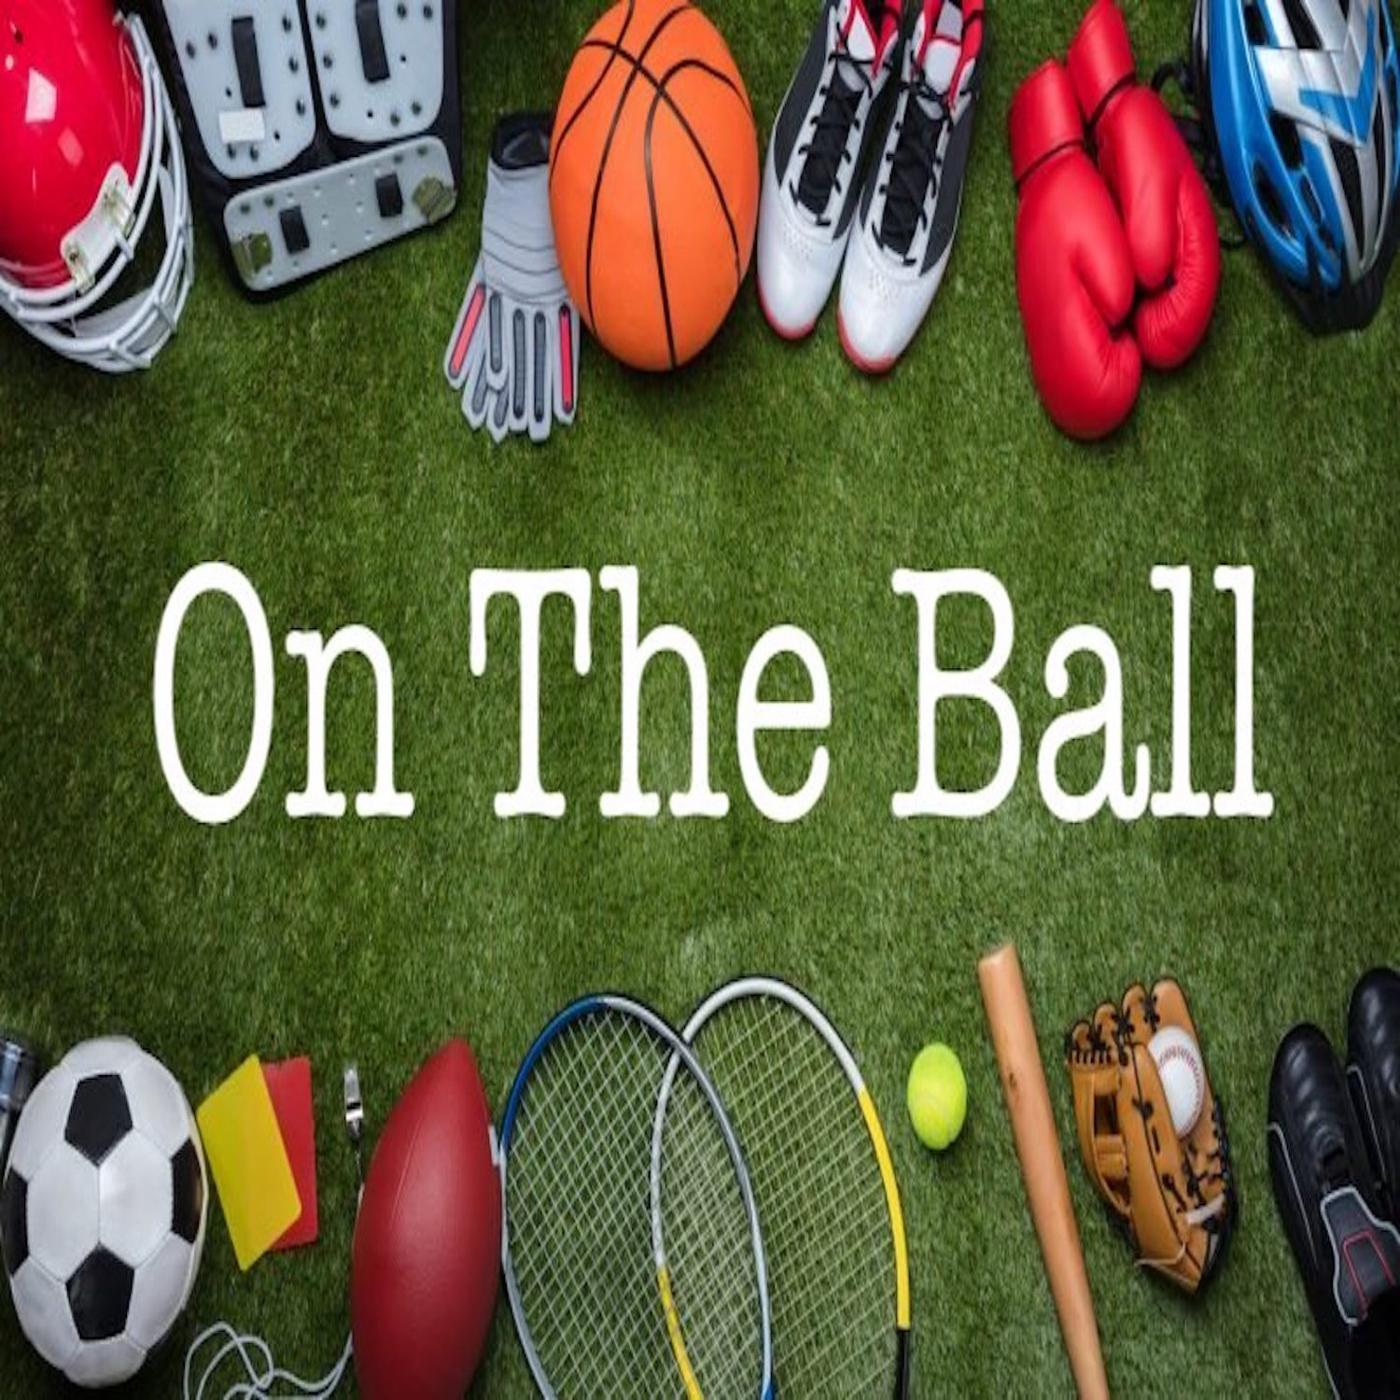 AFL Relegation, New Tennis Schedule & NFL Contract Holdouts - Episode 26